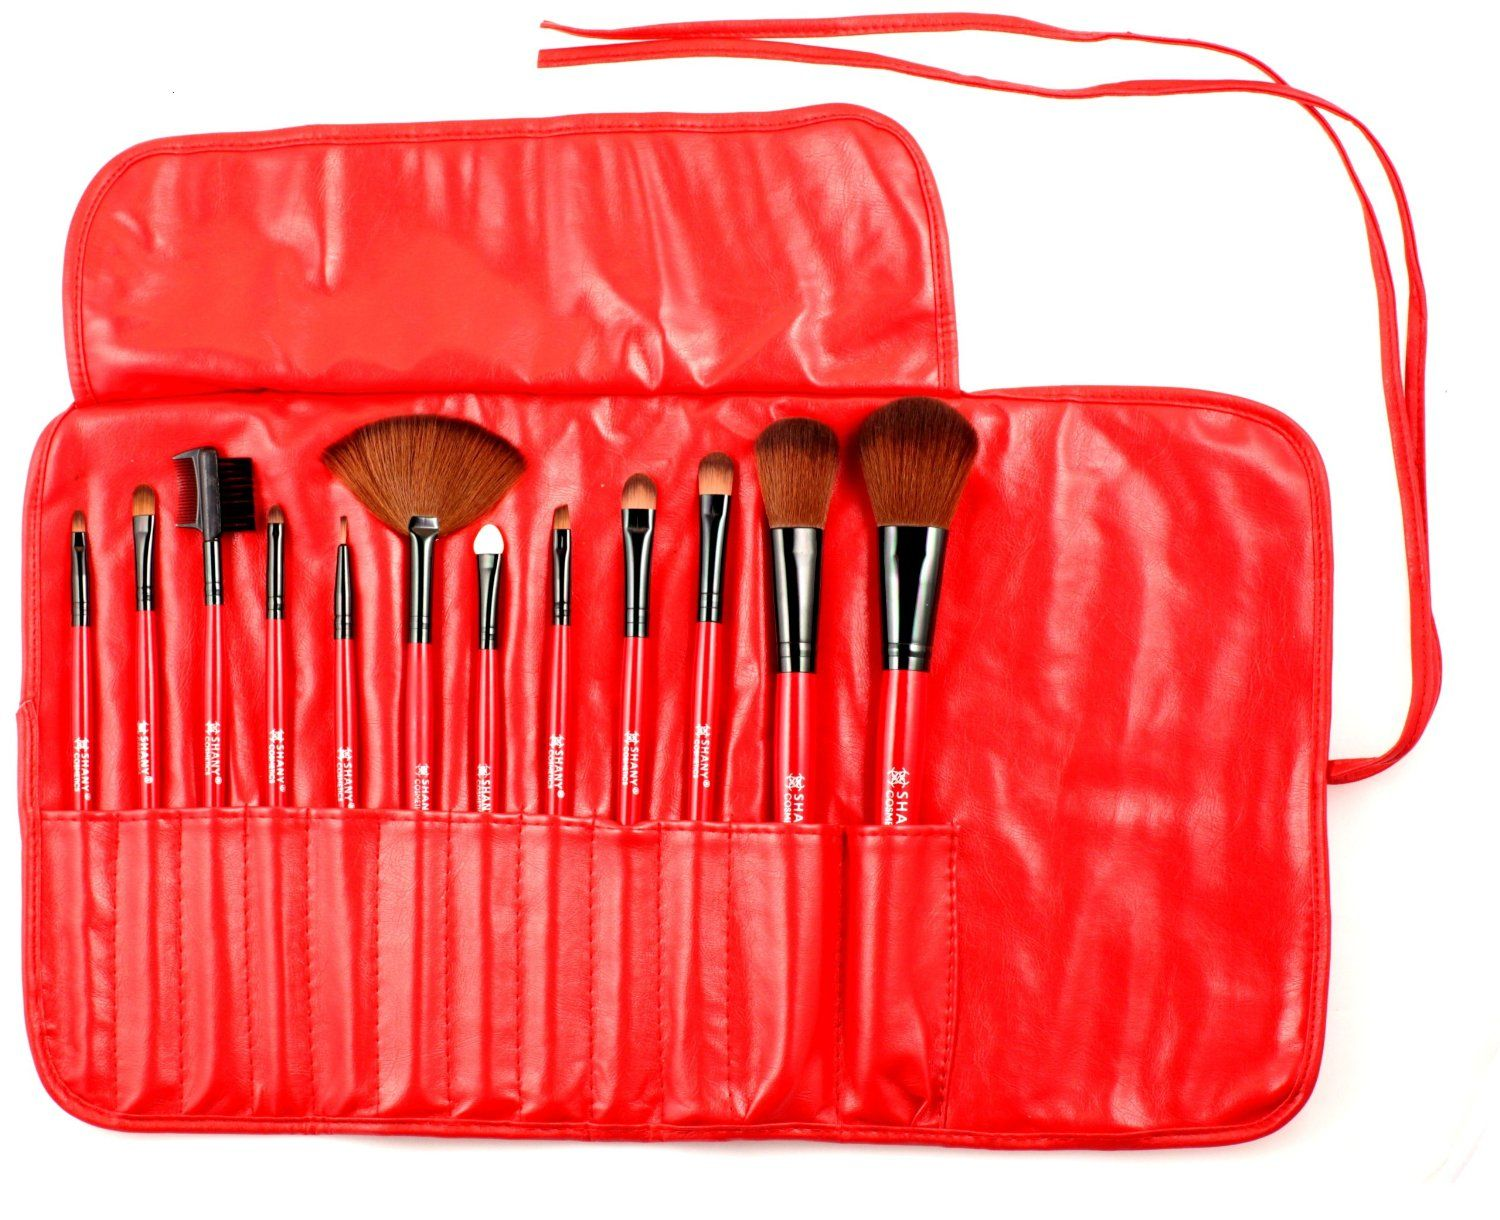 Shany Professional 13 Piece Cosmetic Brush Set With Pouch Set Of 12 Brushes And 1 Pouch Red Price Cosmetic Brush Set It Cosmetics Brushes Shany Cosmetics